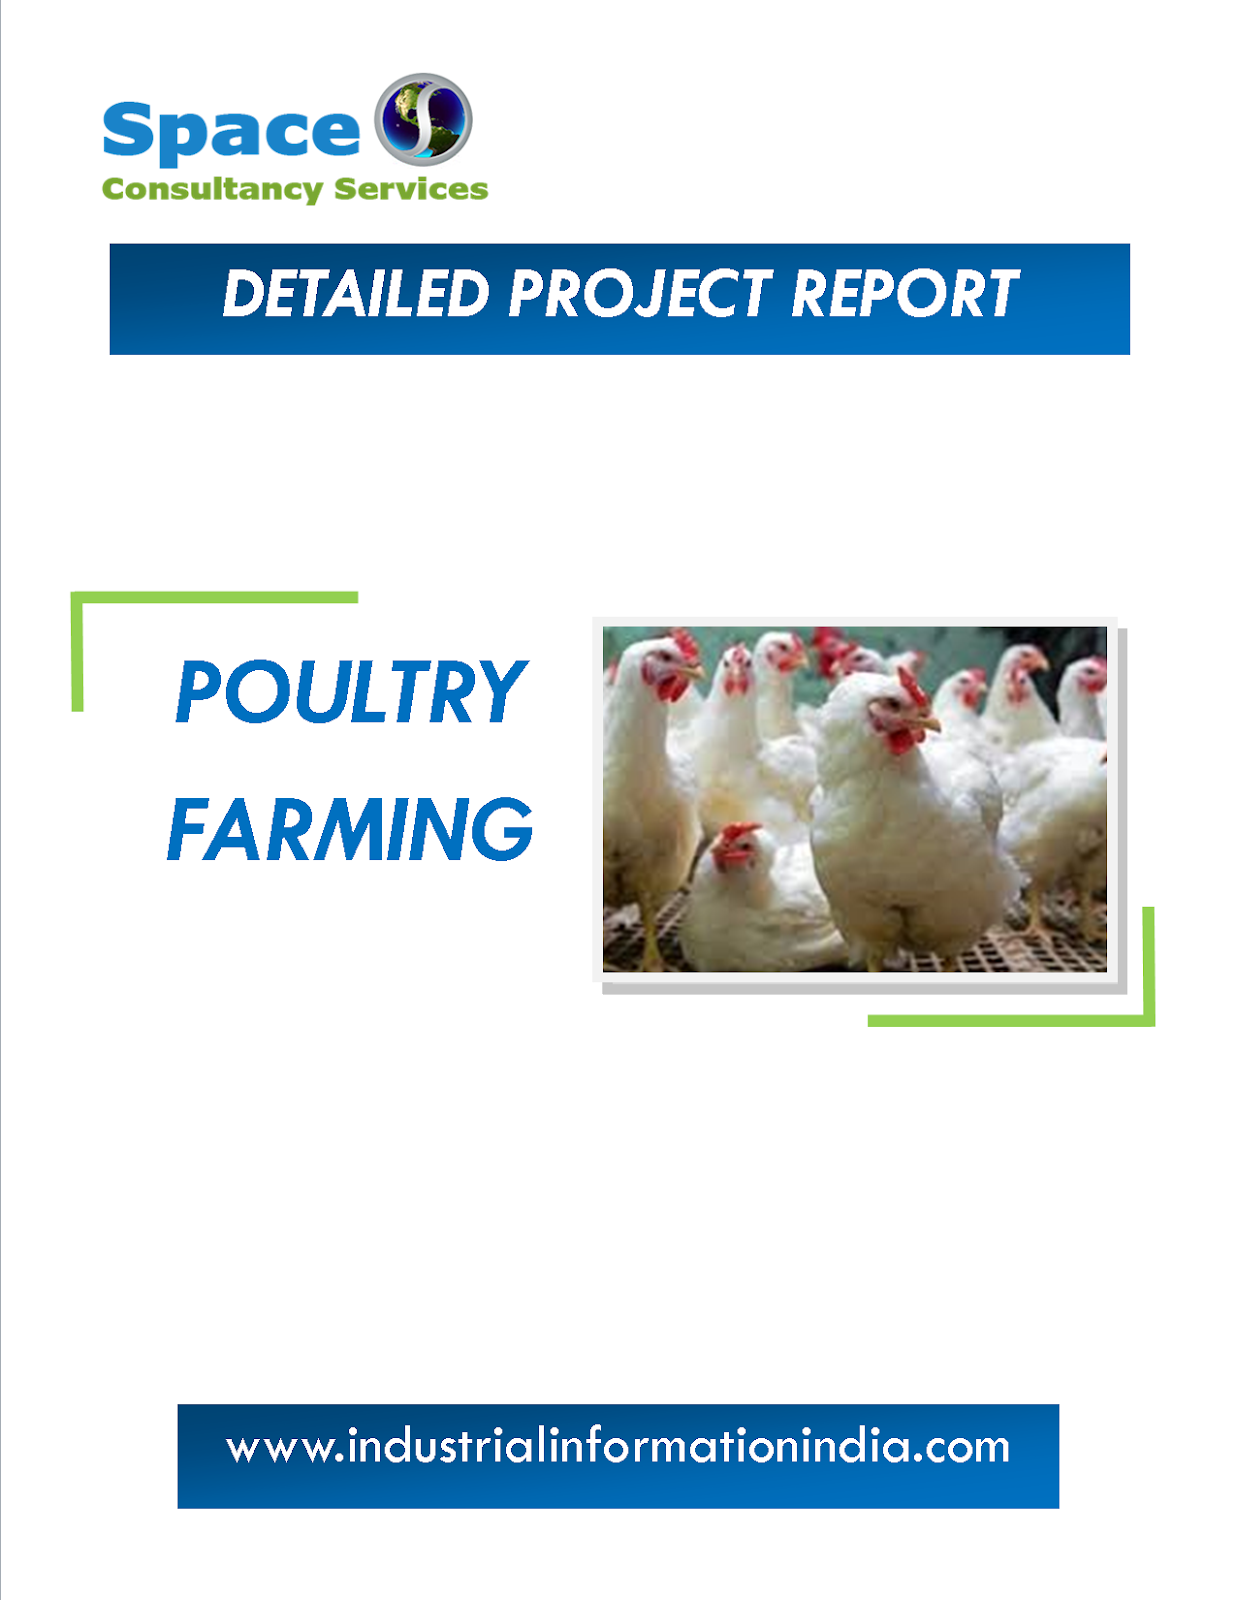 Poultry Farming Project Report - Space Consultancy Services